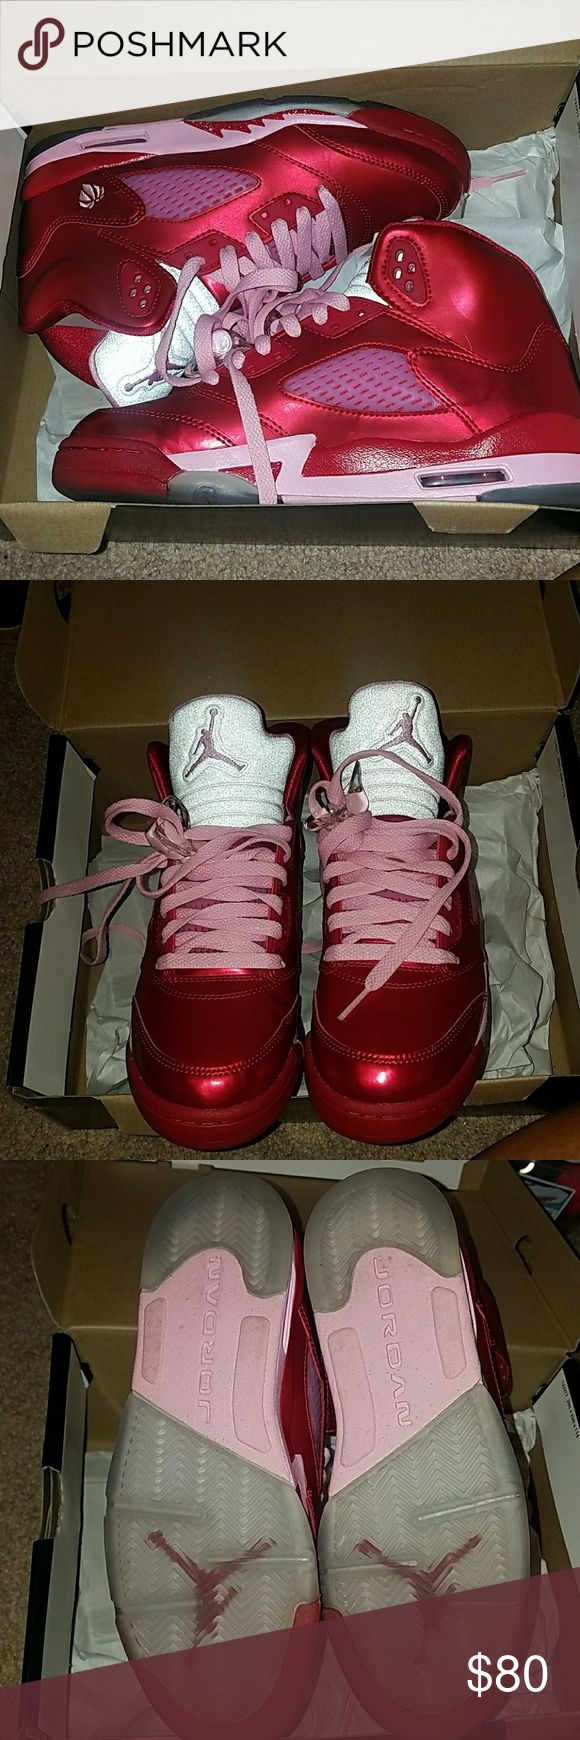 Never Worn. Girls Air Jordan Retro 5. Nike Valentine's 5. Size 5.5y. Super cute. Box available. Authentic. Jordan Shoes